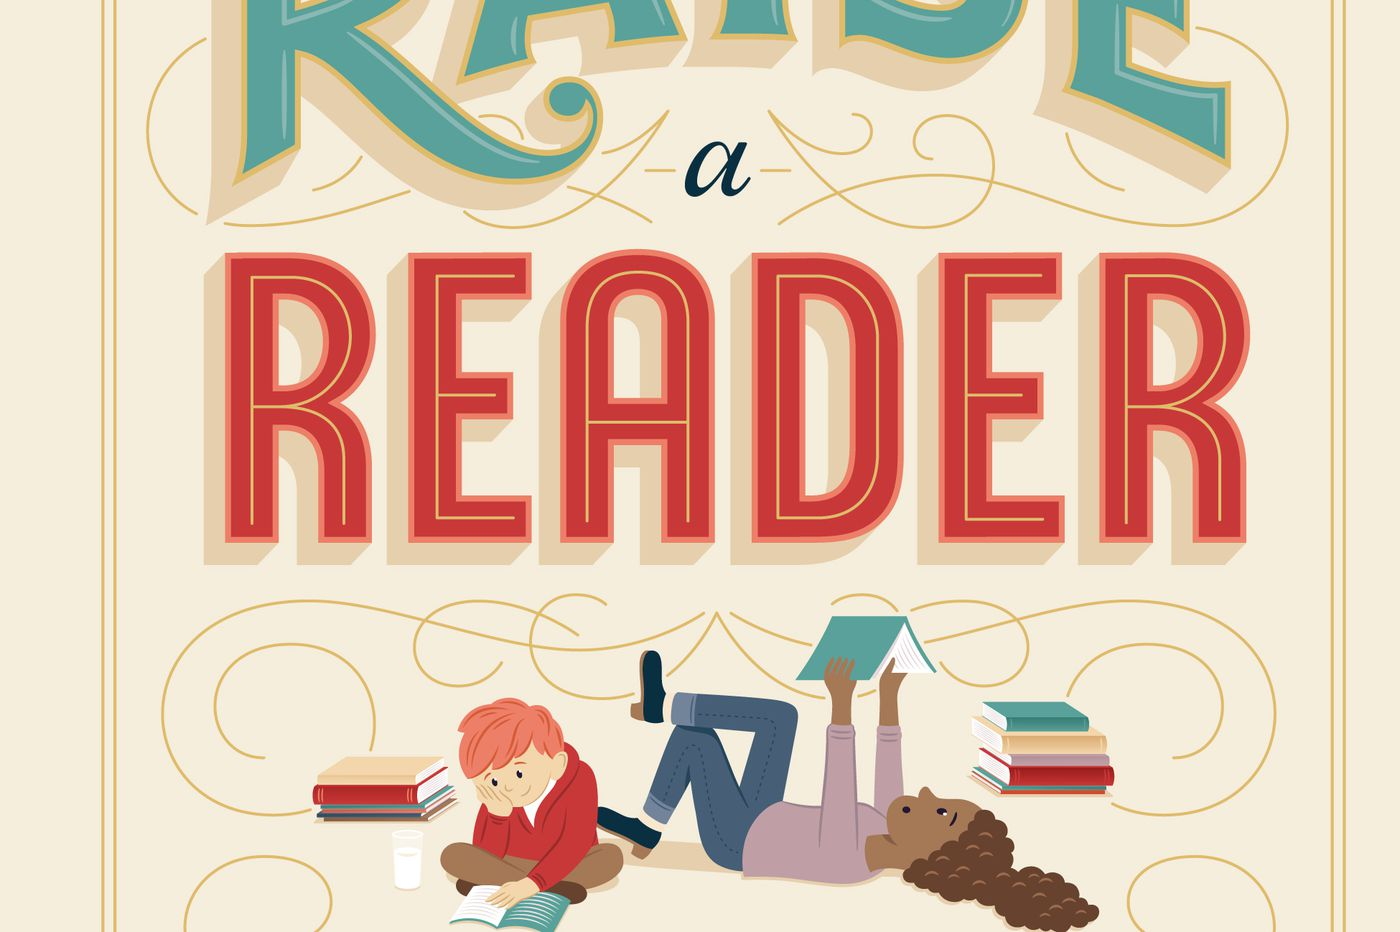 'How to Raise a Reader' gathers dos, don'ts, and book lists | Book review